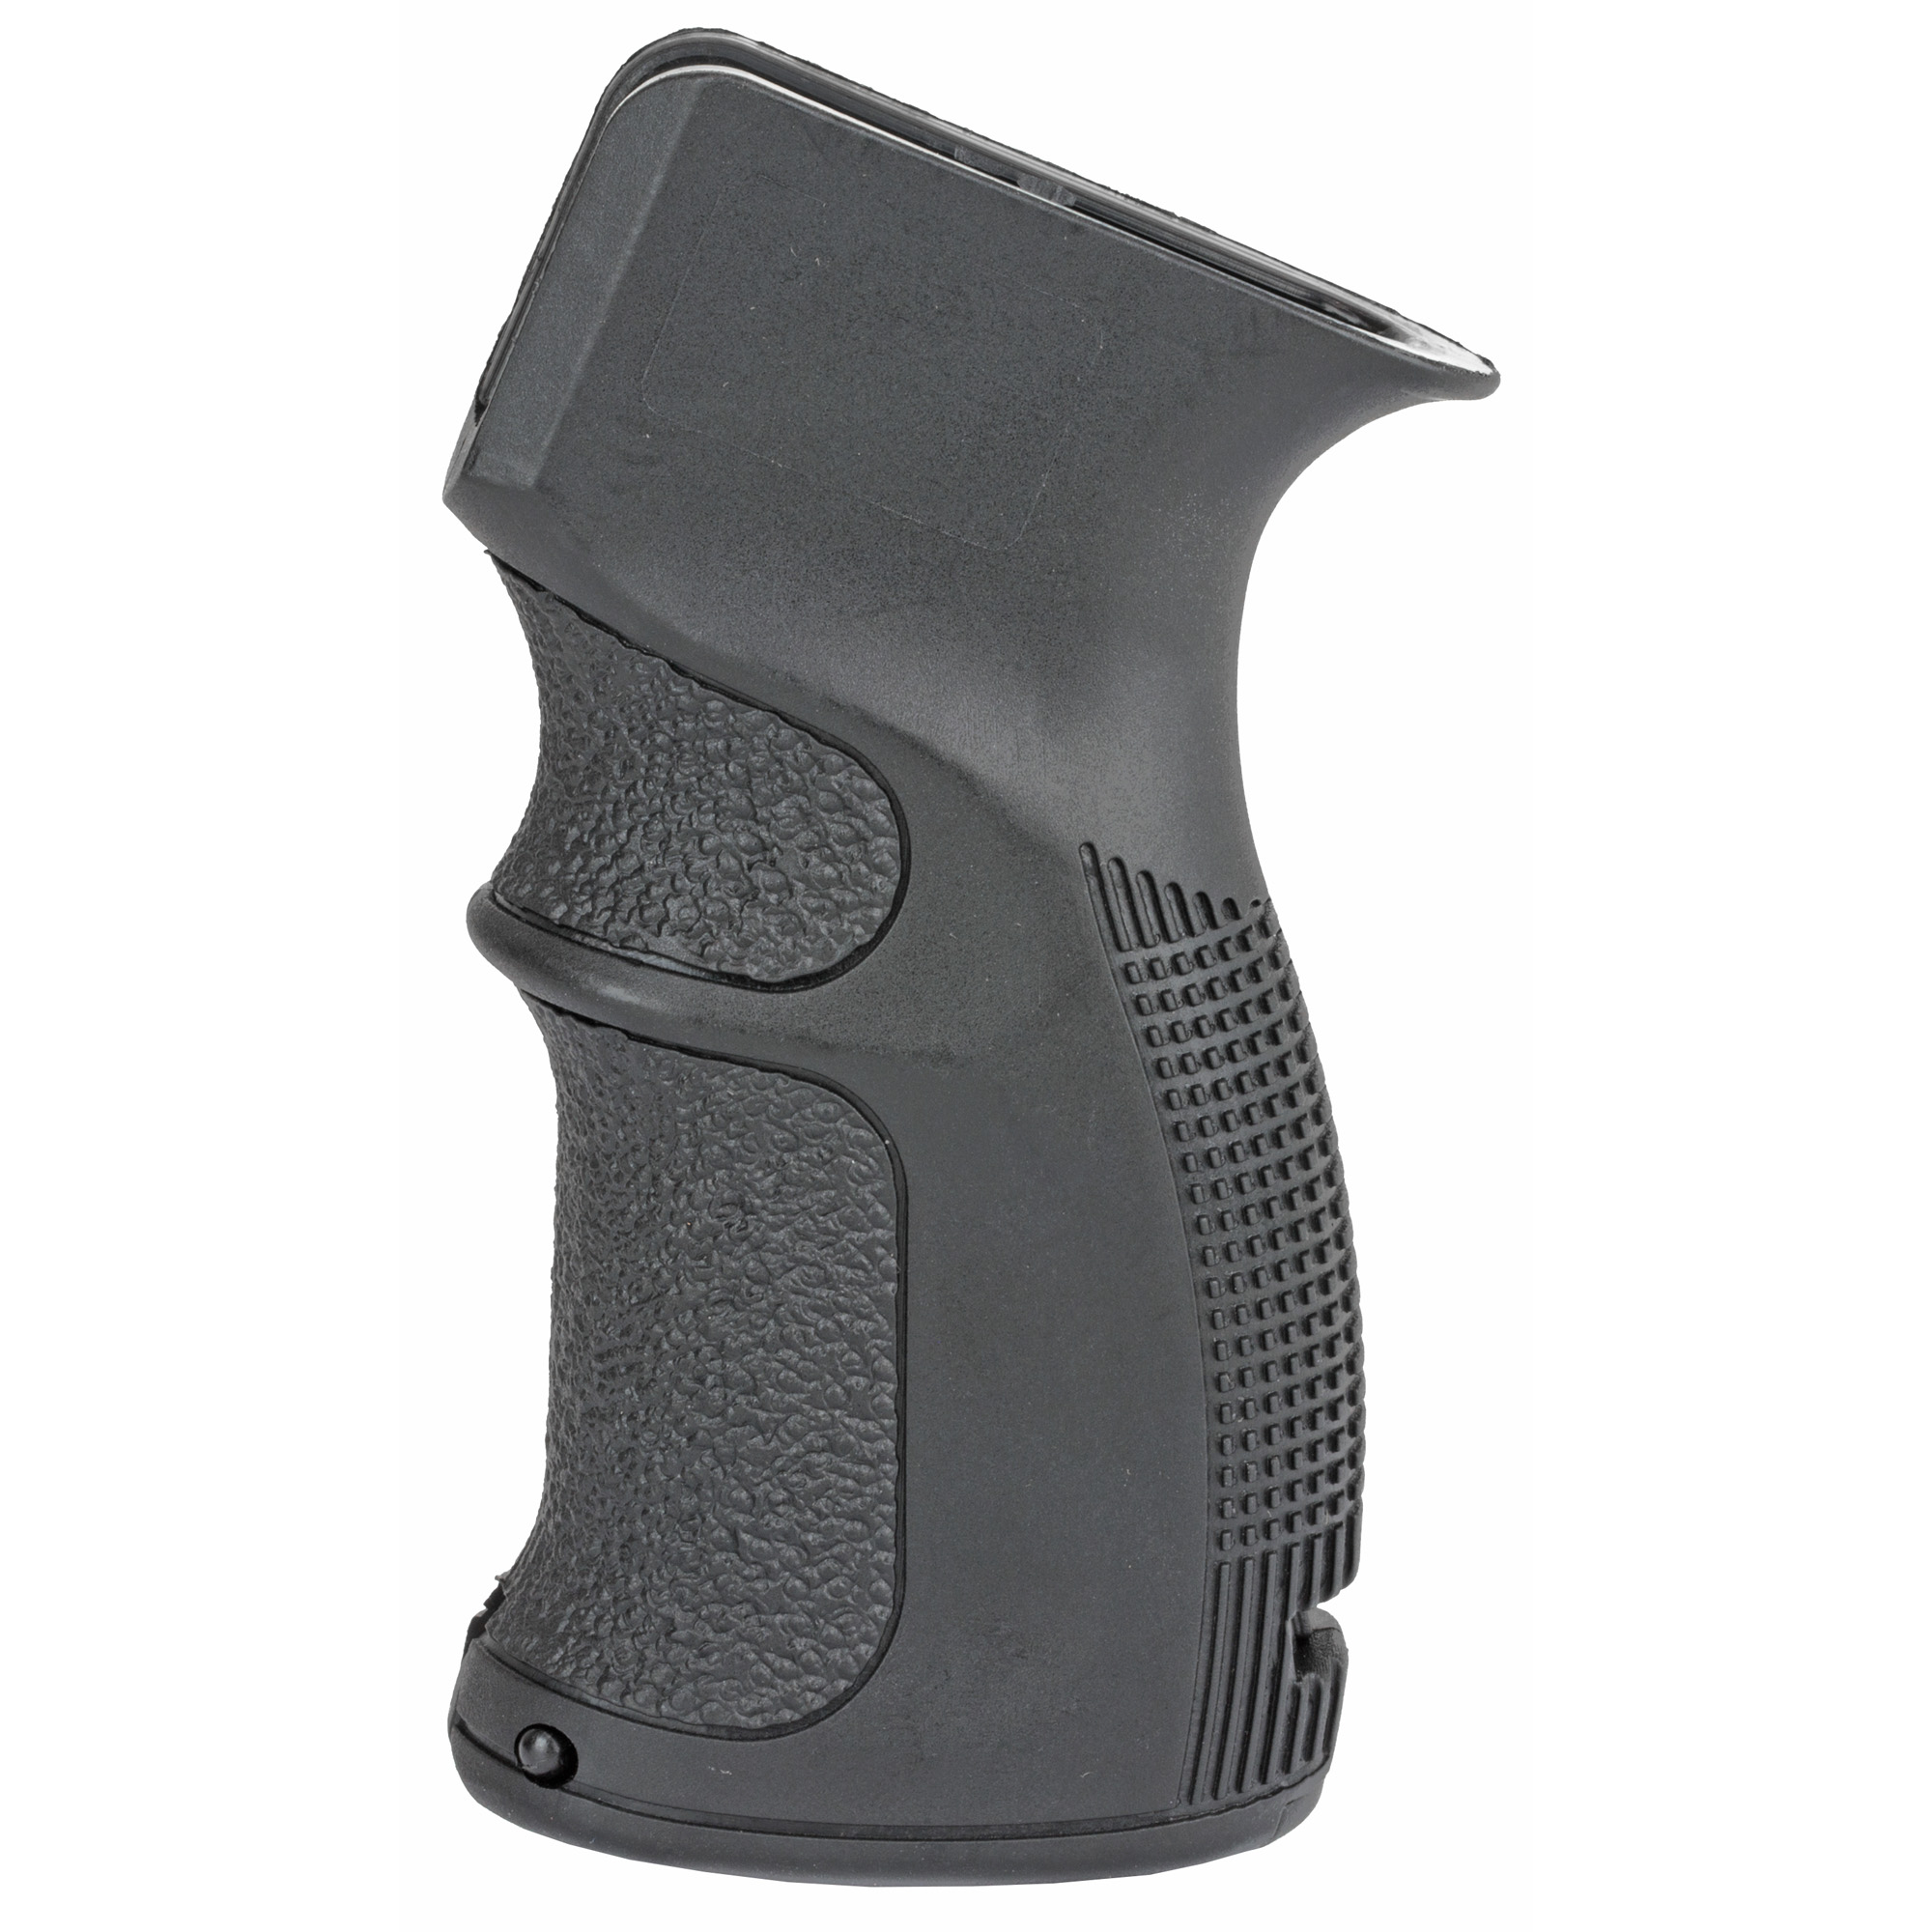 "Their AG-47 Ergonomic Pistol Grip provides enhanced grip and improved weapon handling for your AK-47/74. It features a built-In storage compartment with removable 2x CR123 battery holder"" finger grooves and backstrap shape for enhanced"" more comfortable grip and is made of MIL-SPEC fiberglass reinforced polymer composite."